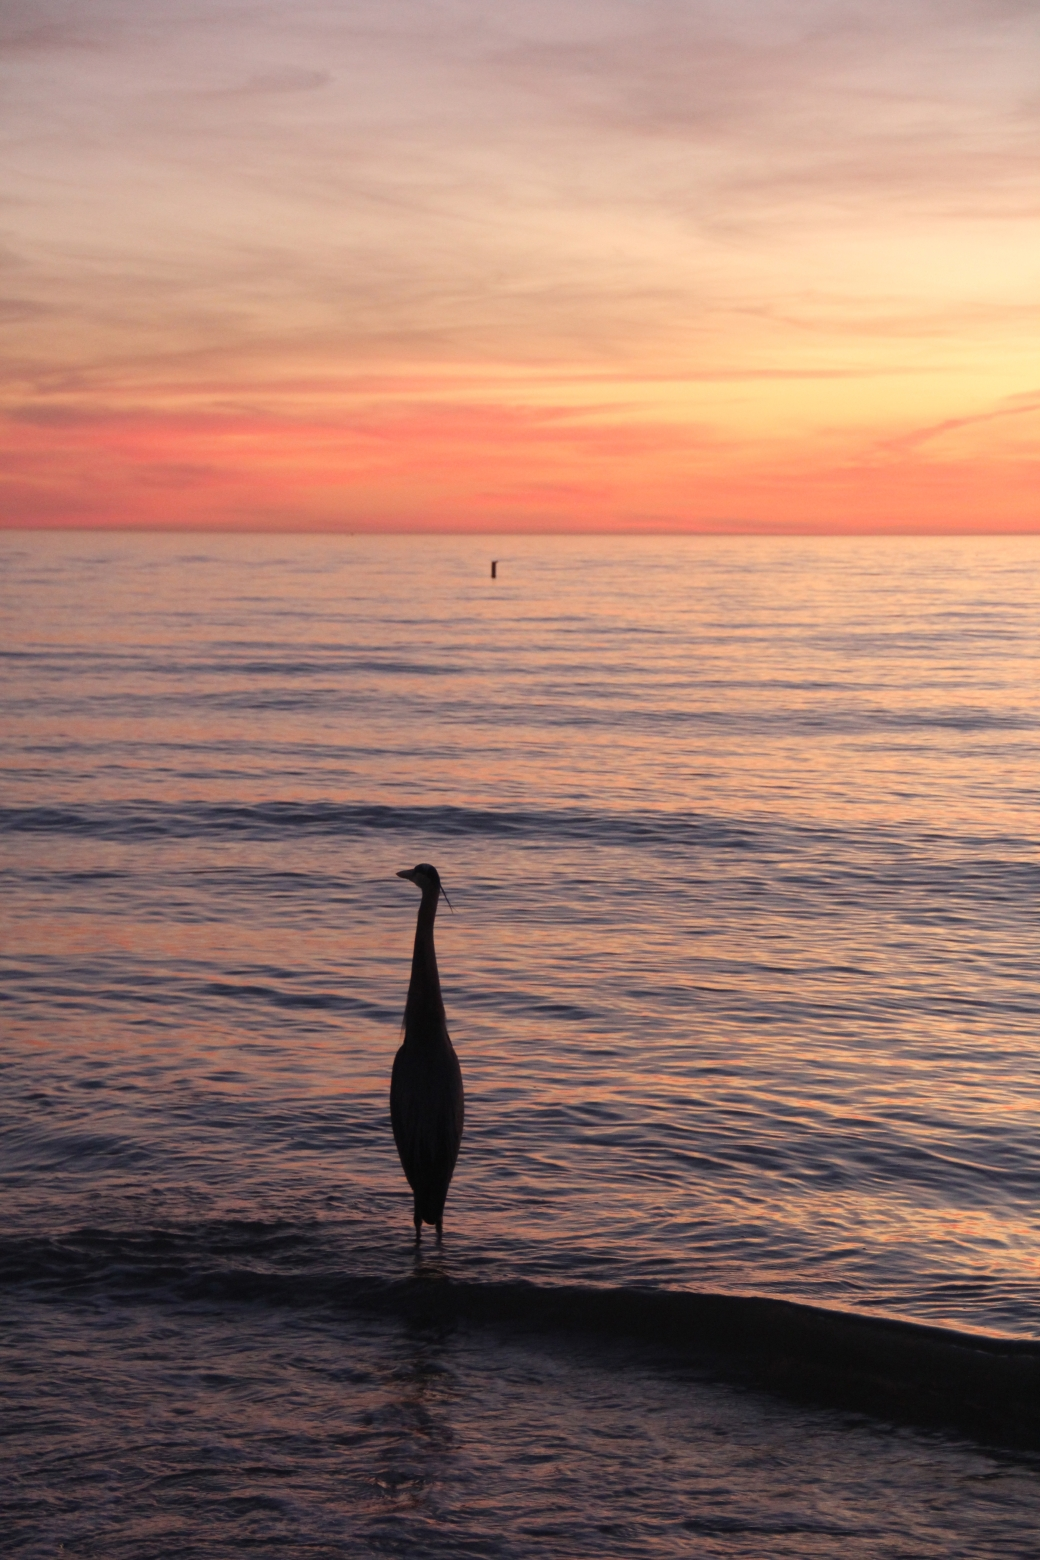 st pete's beach bird sunset